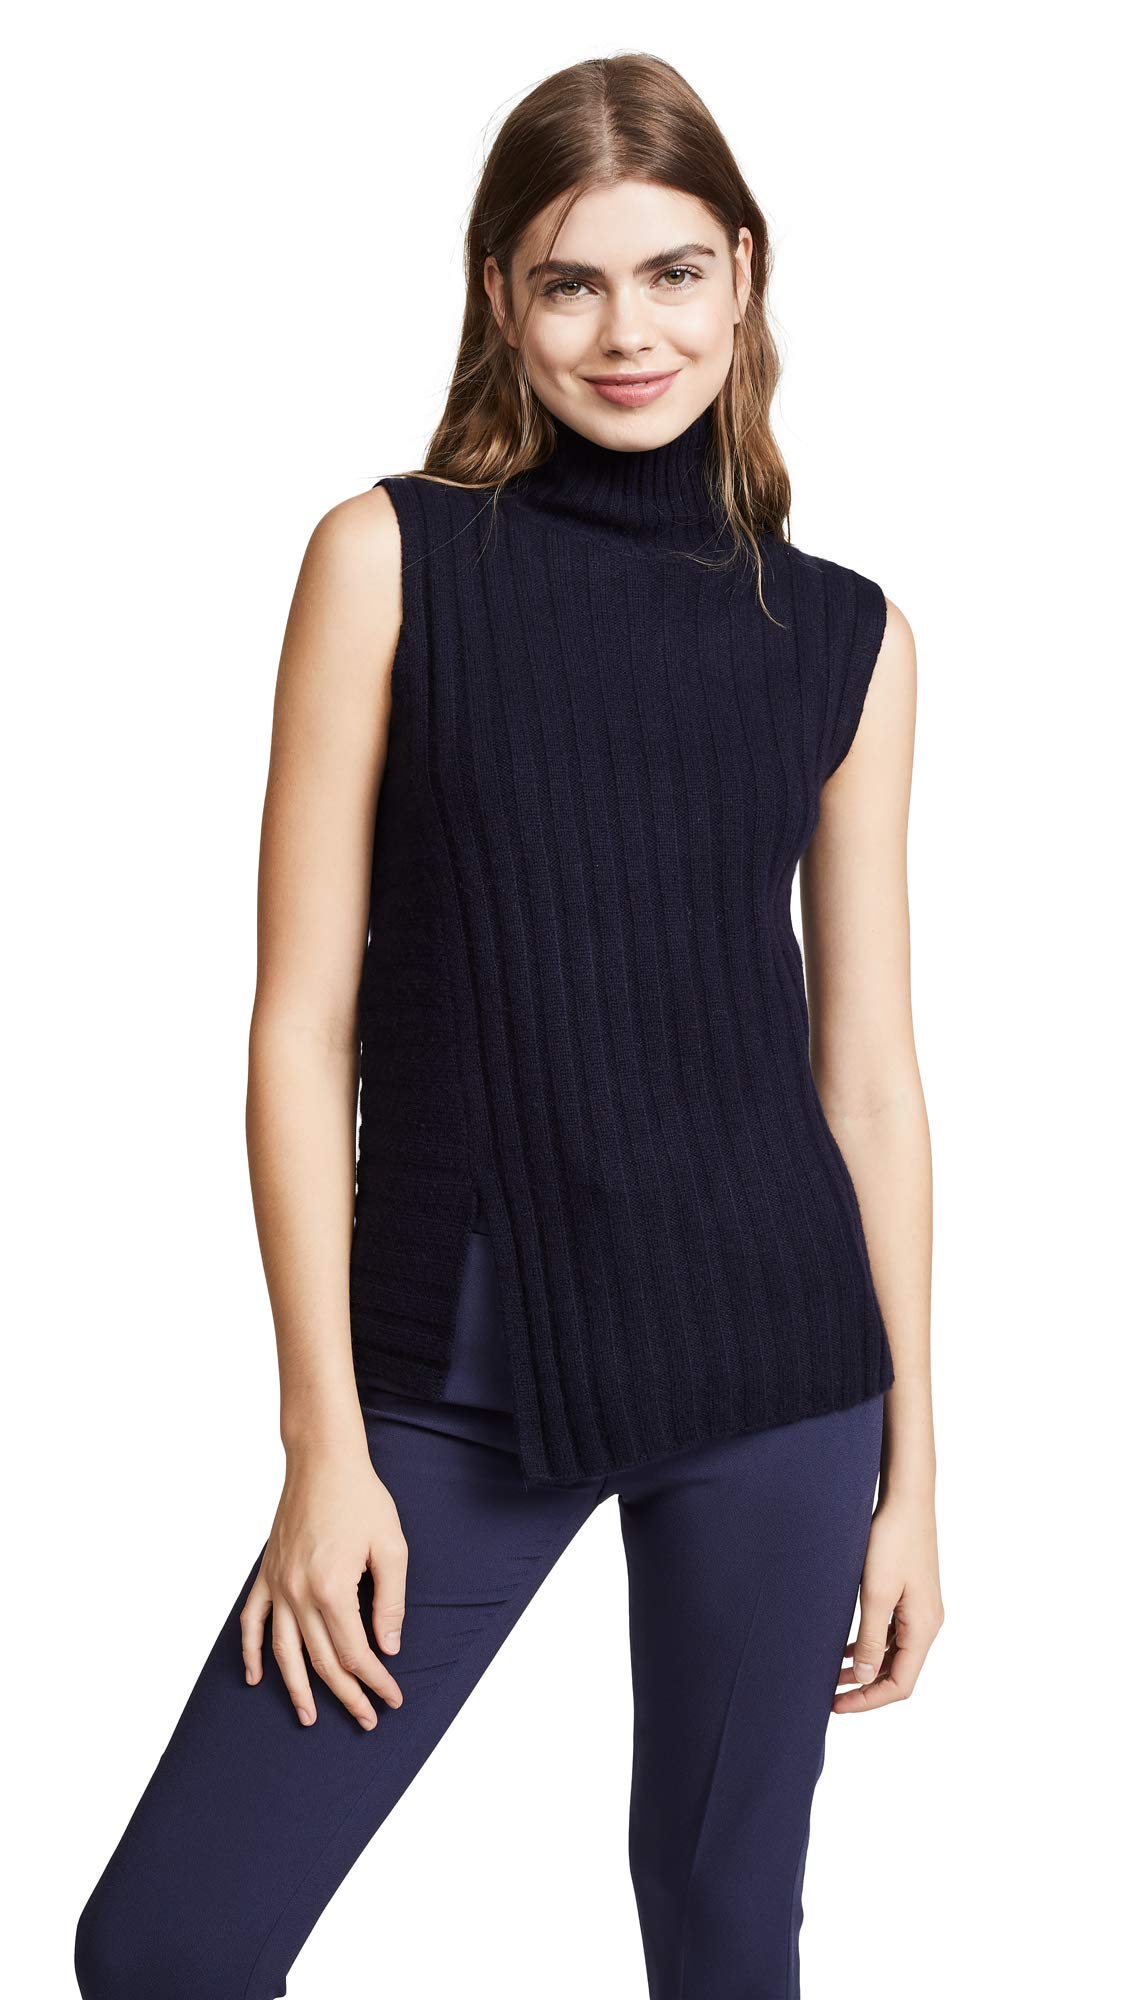 Vince Women's Rib Sleeveless Turtleneck Sweater